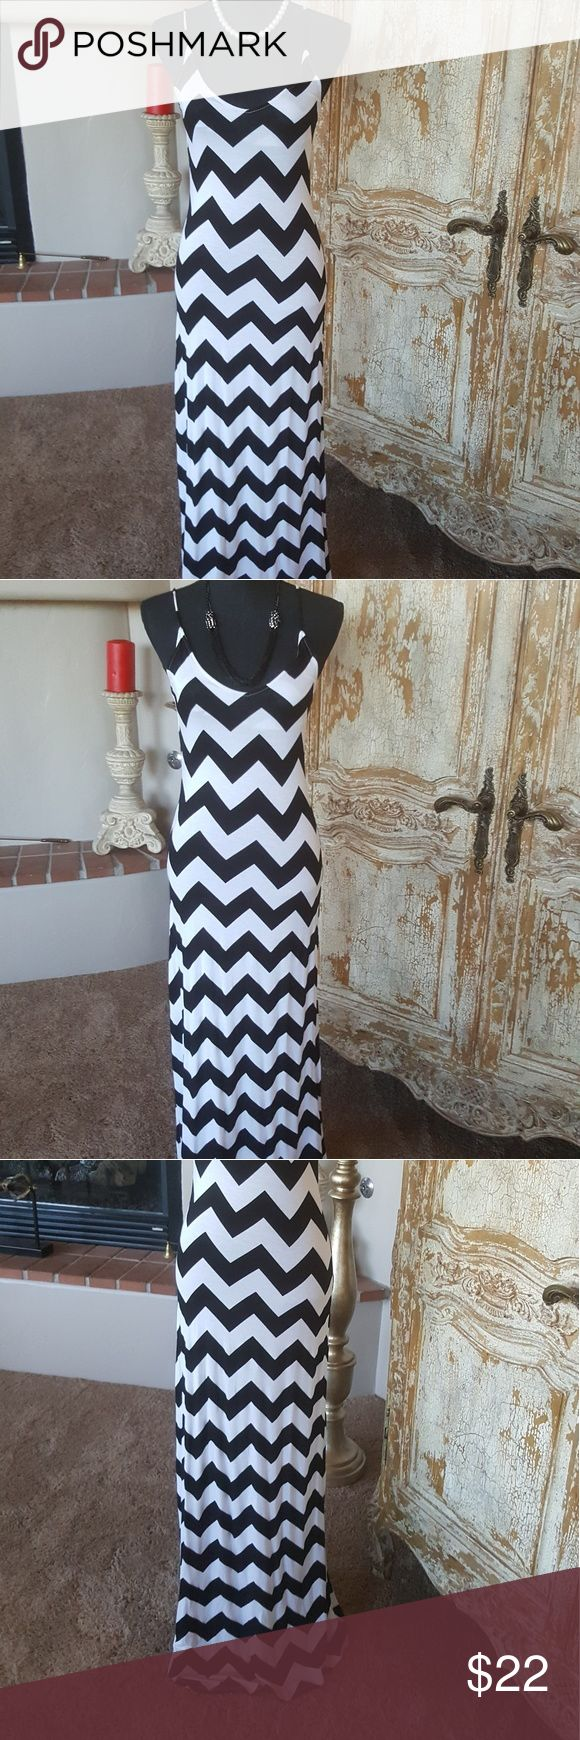 Black and white Chevron Maxi dress New w/out tags Alloy New without tags black and white chevron maxi. Made in USA. 97% Rayon 3% Spandex.  Measures approx 14 inches across for Bust and 59 inches in length. ALLOY Dresses Maxi